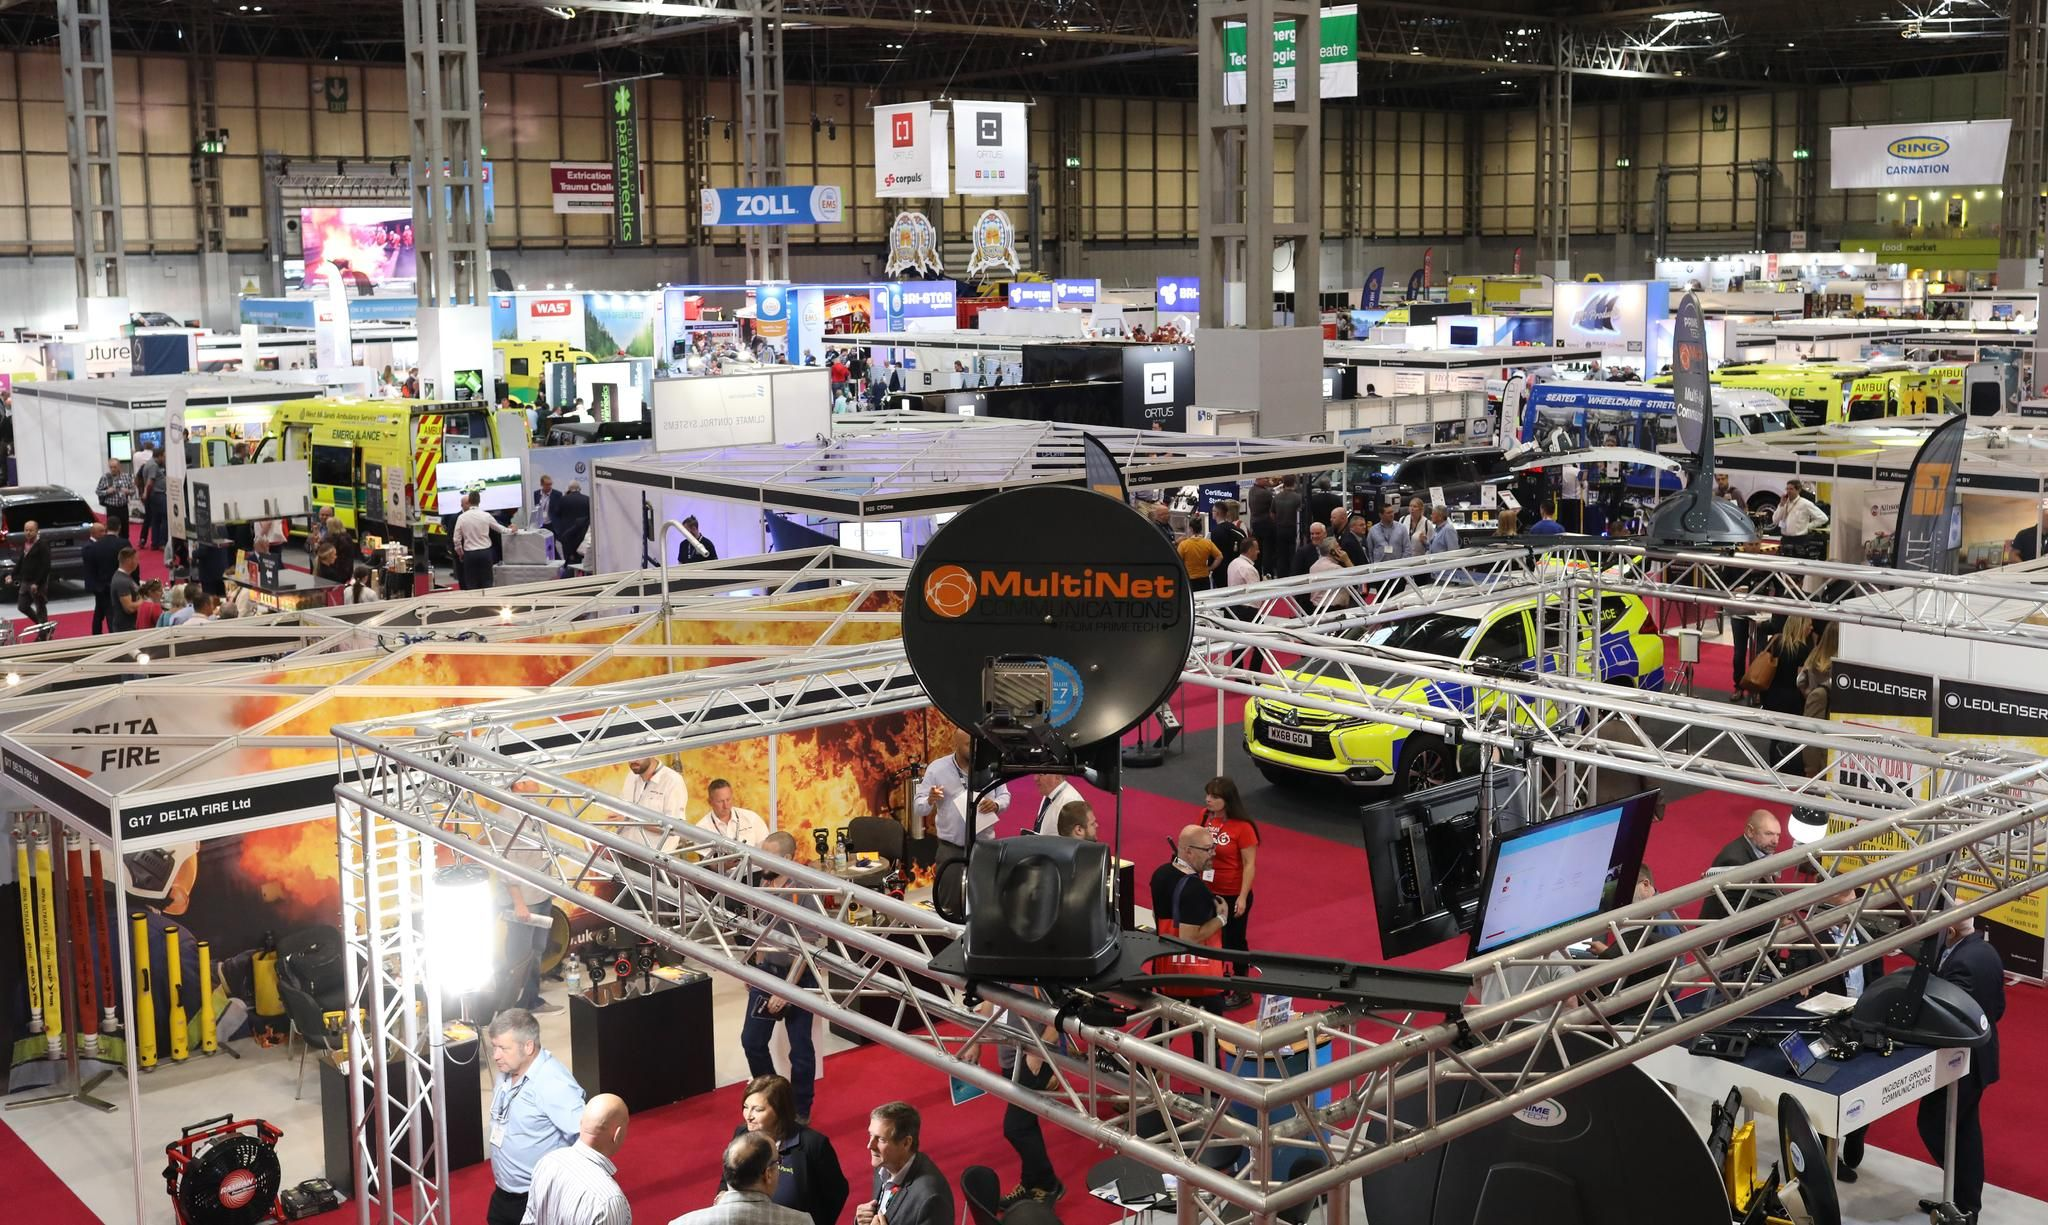 JOIN 10,000+ VISITORS FROM THE EMERGENCY SERVICES SECTOR